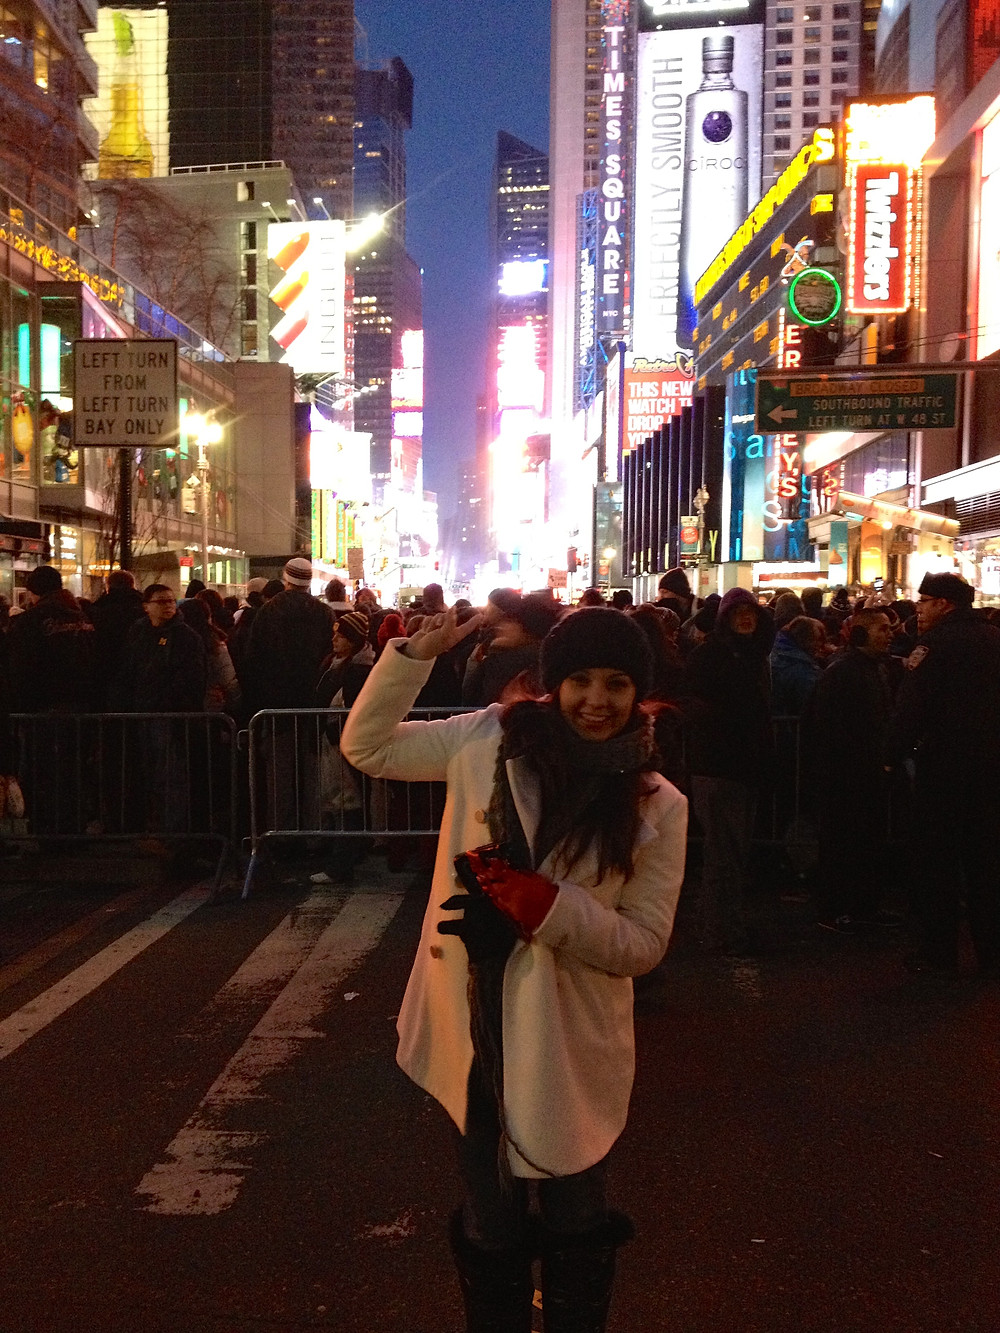 Standing in front of Times Square right after the countdown! Ringing in 2013 =)